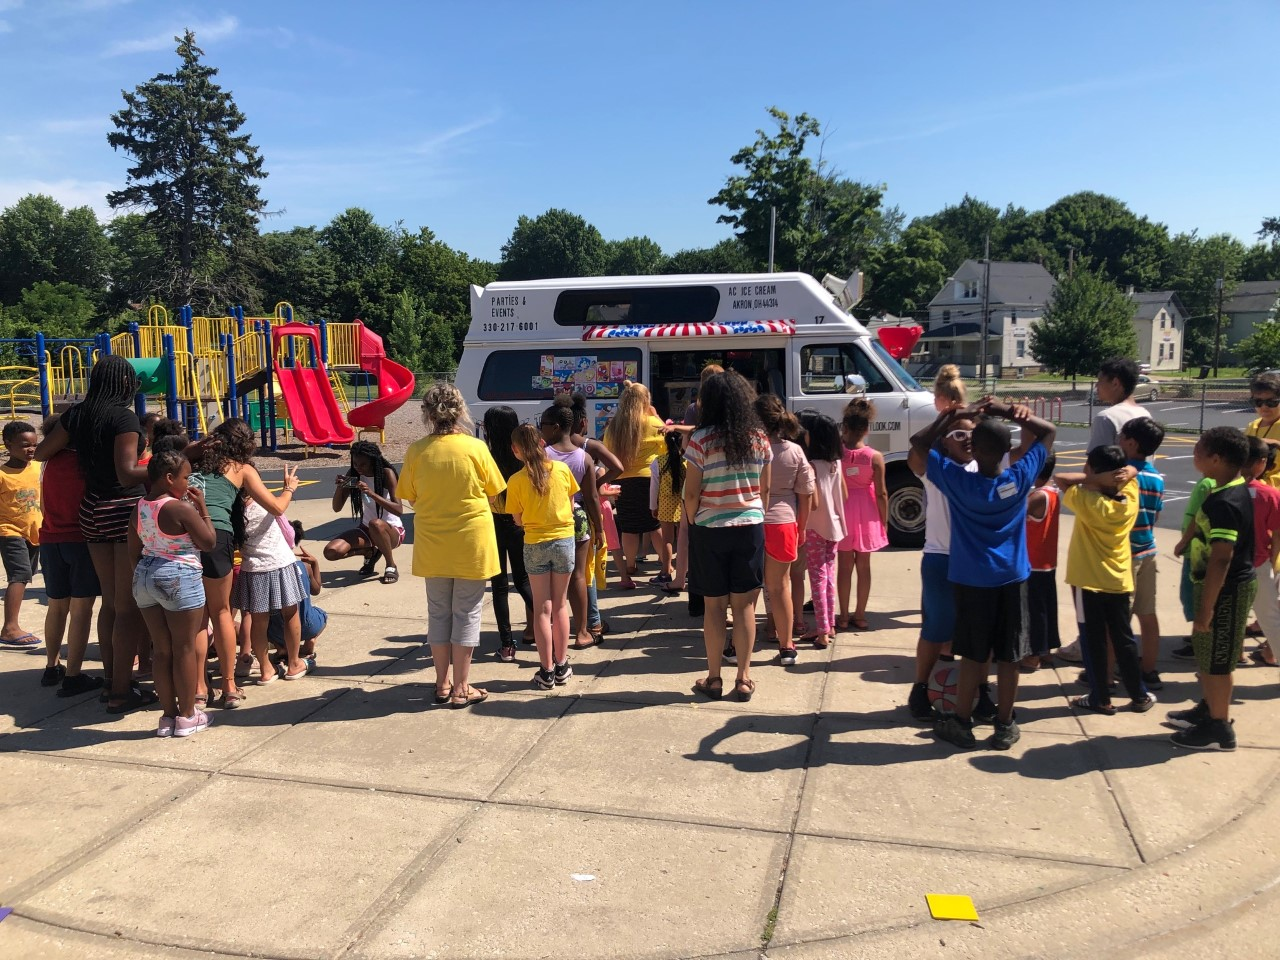 The ice cream truck and Slip N Slide were just two special treats that WOW could help attendees enjoy during the four weeks of this summer's Camp Learn-A-Lot. Camp director Lisa Marshall describes the Camp as the best one in its eight-year-history!